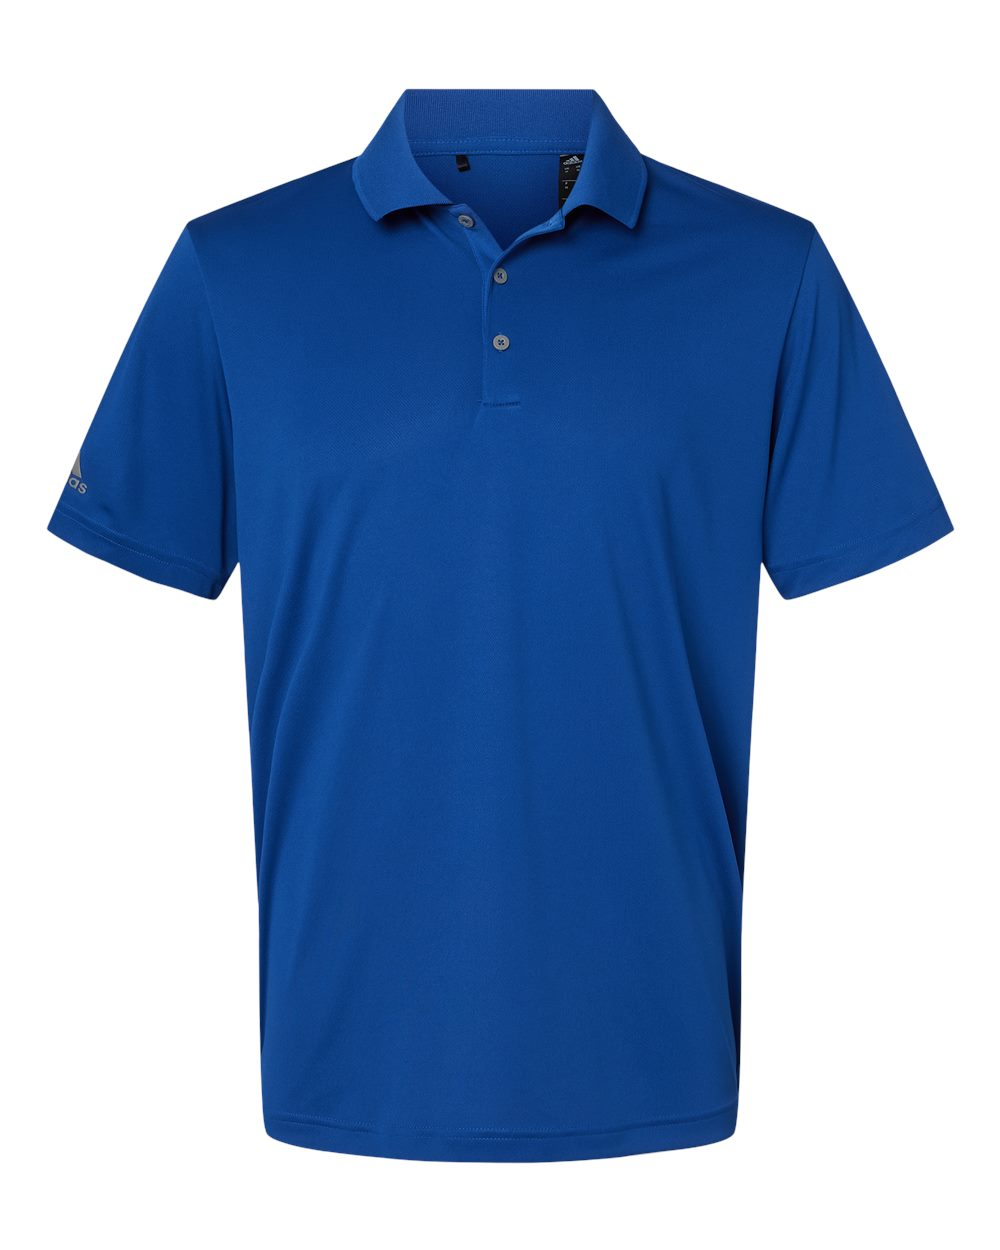 Adidas-Performance-Sport-Shirt-Polo-Button-A230-up-to-4XL miniature 19